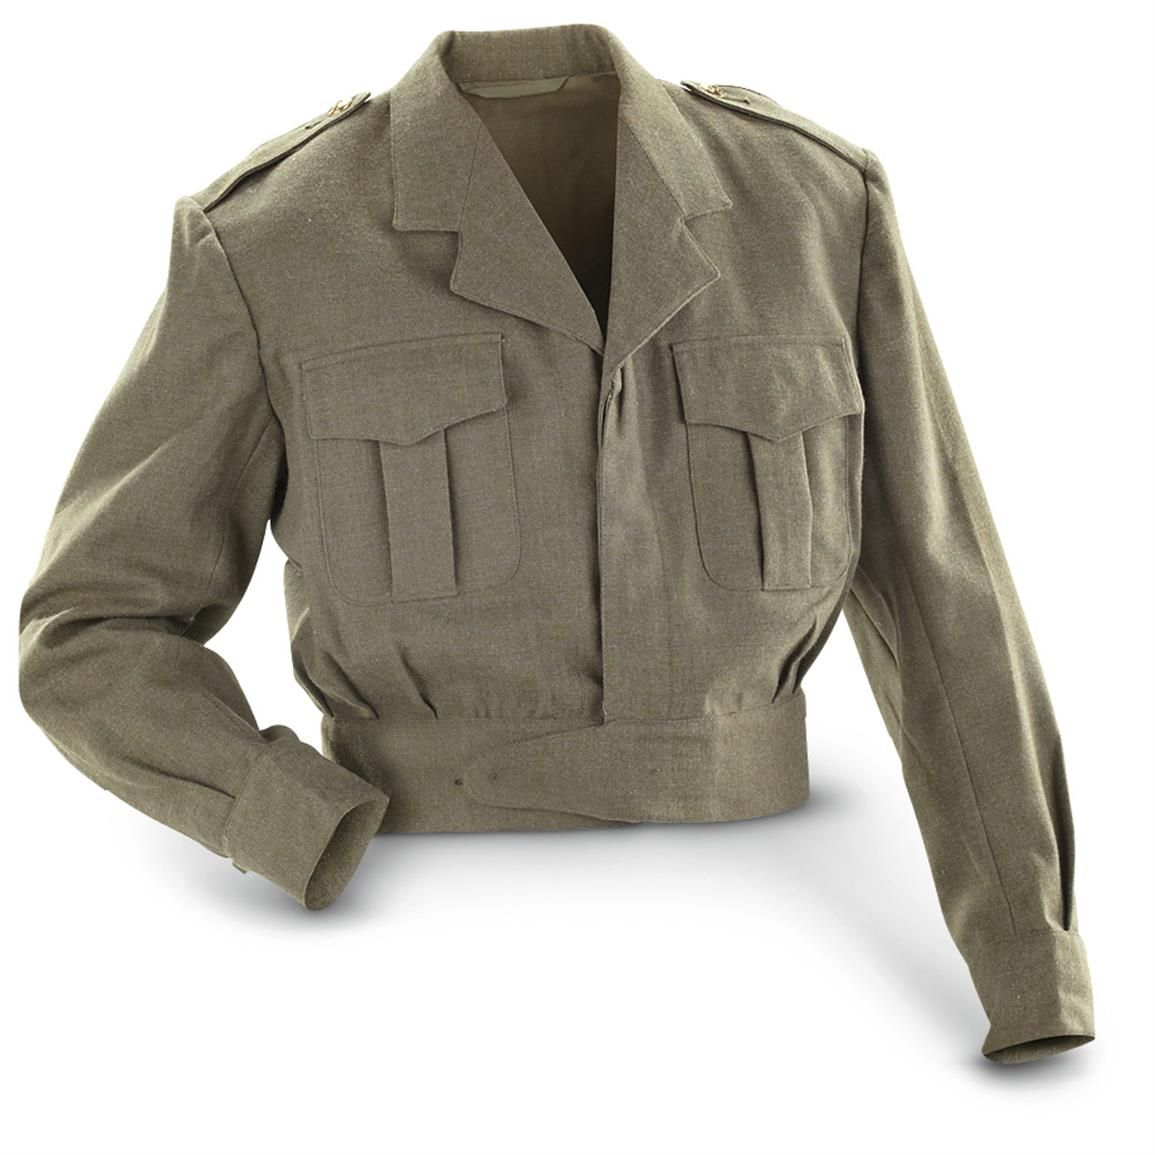 c0c88c6e05d4e5 Used Belgium Military Surplus US-style Wool Ike Jacket, $19.99 ...